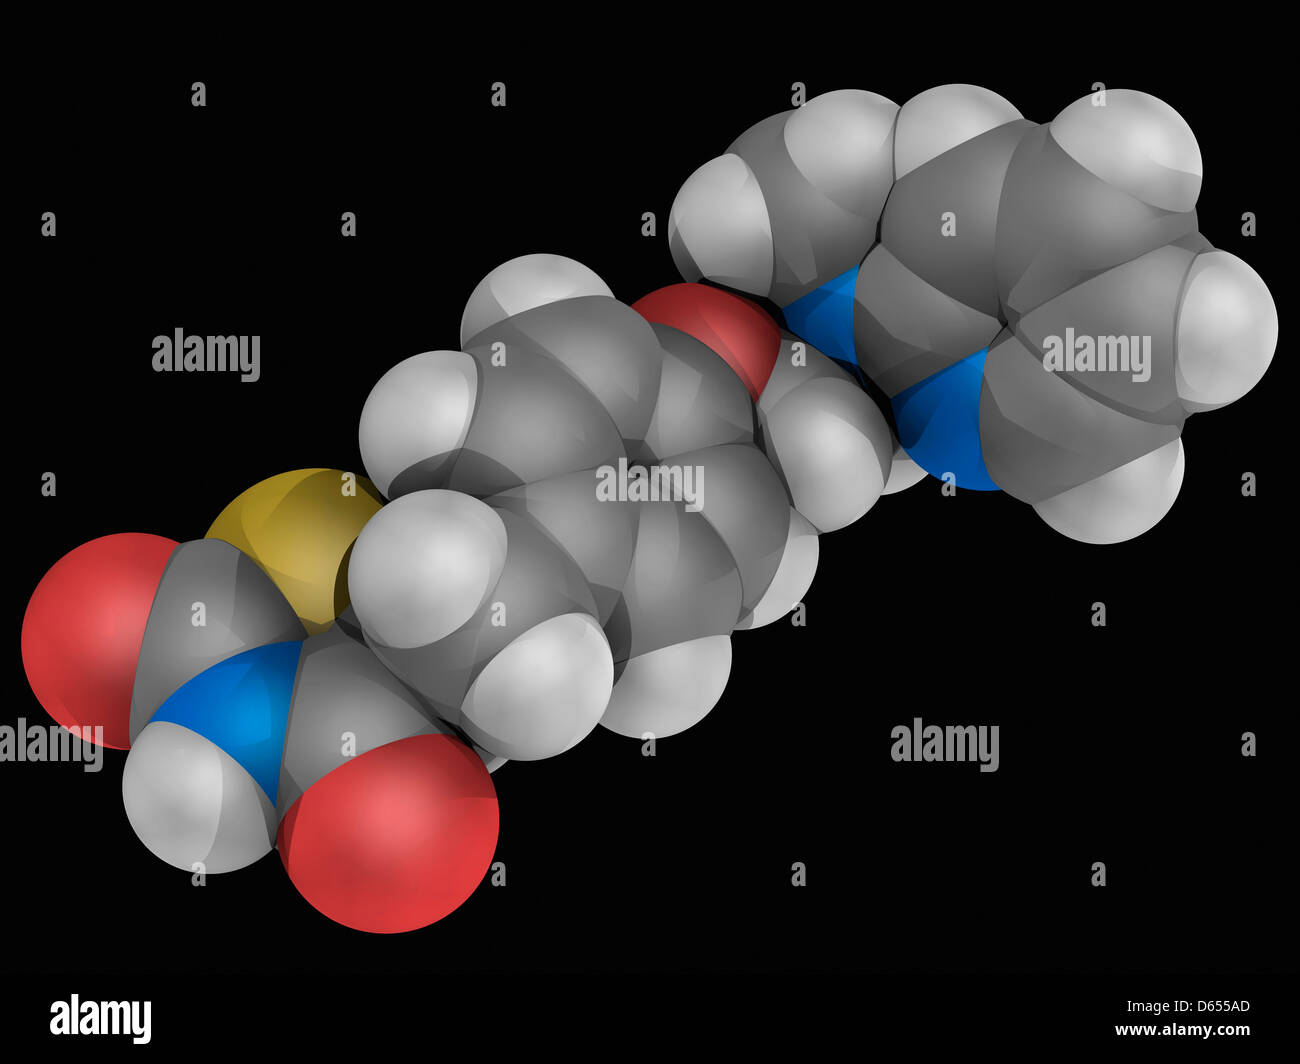 Rosiglitazone molécule pharmaceutique Photo Stock